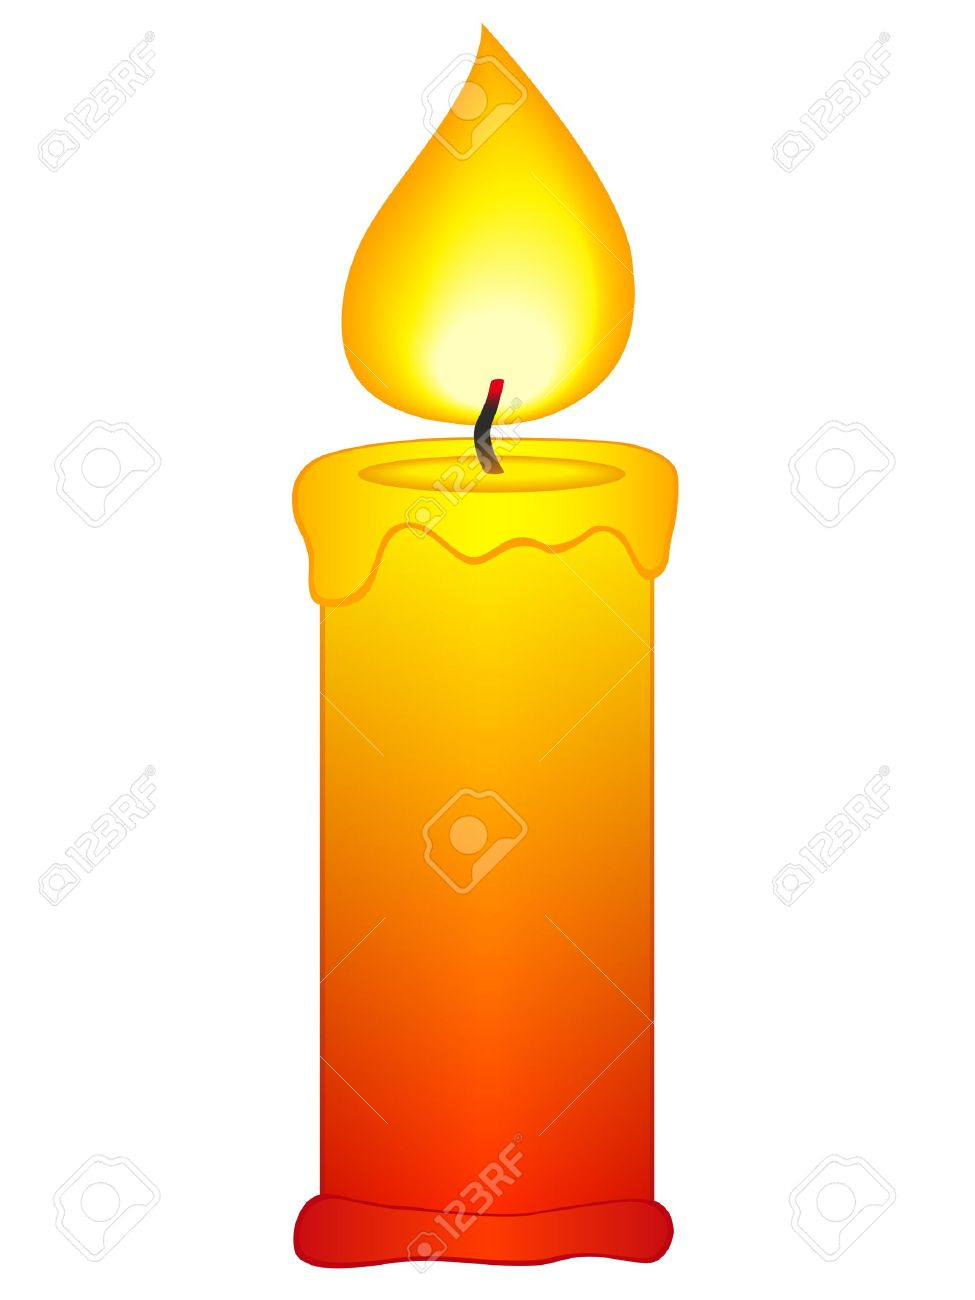 Candle clipart lighted candle, Candle lighted candle.